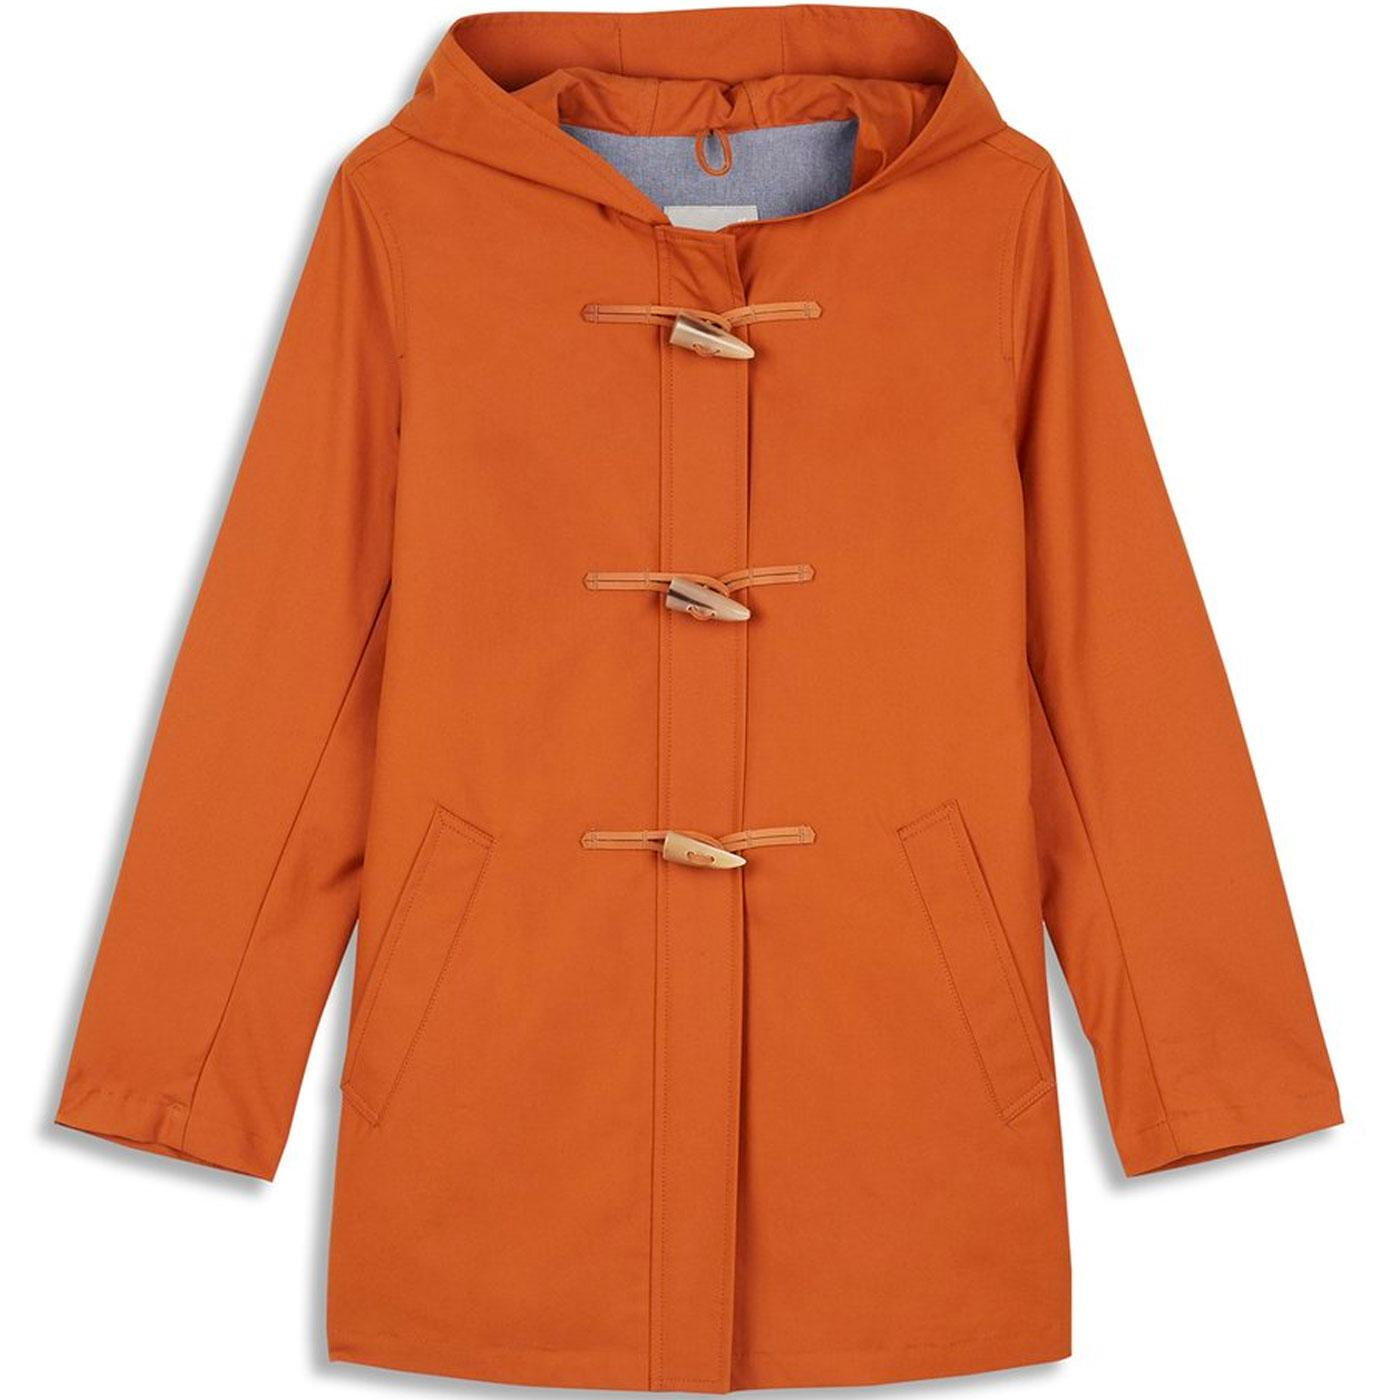 Lucy GLOVERALL Women's Showerproof Duffle Coat G